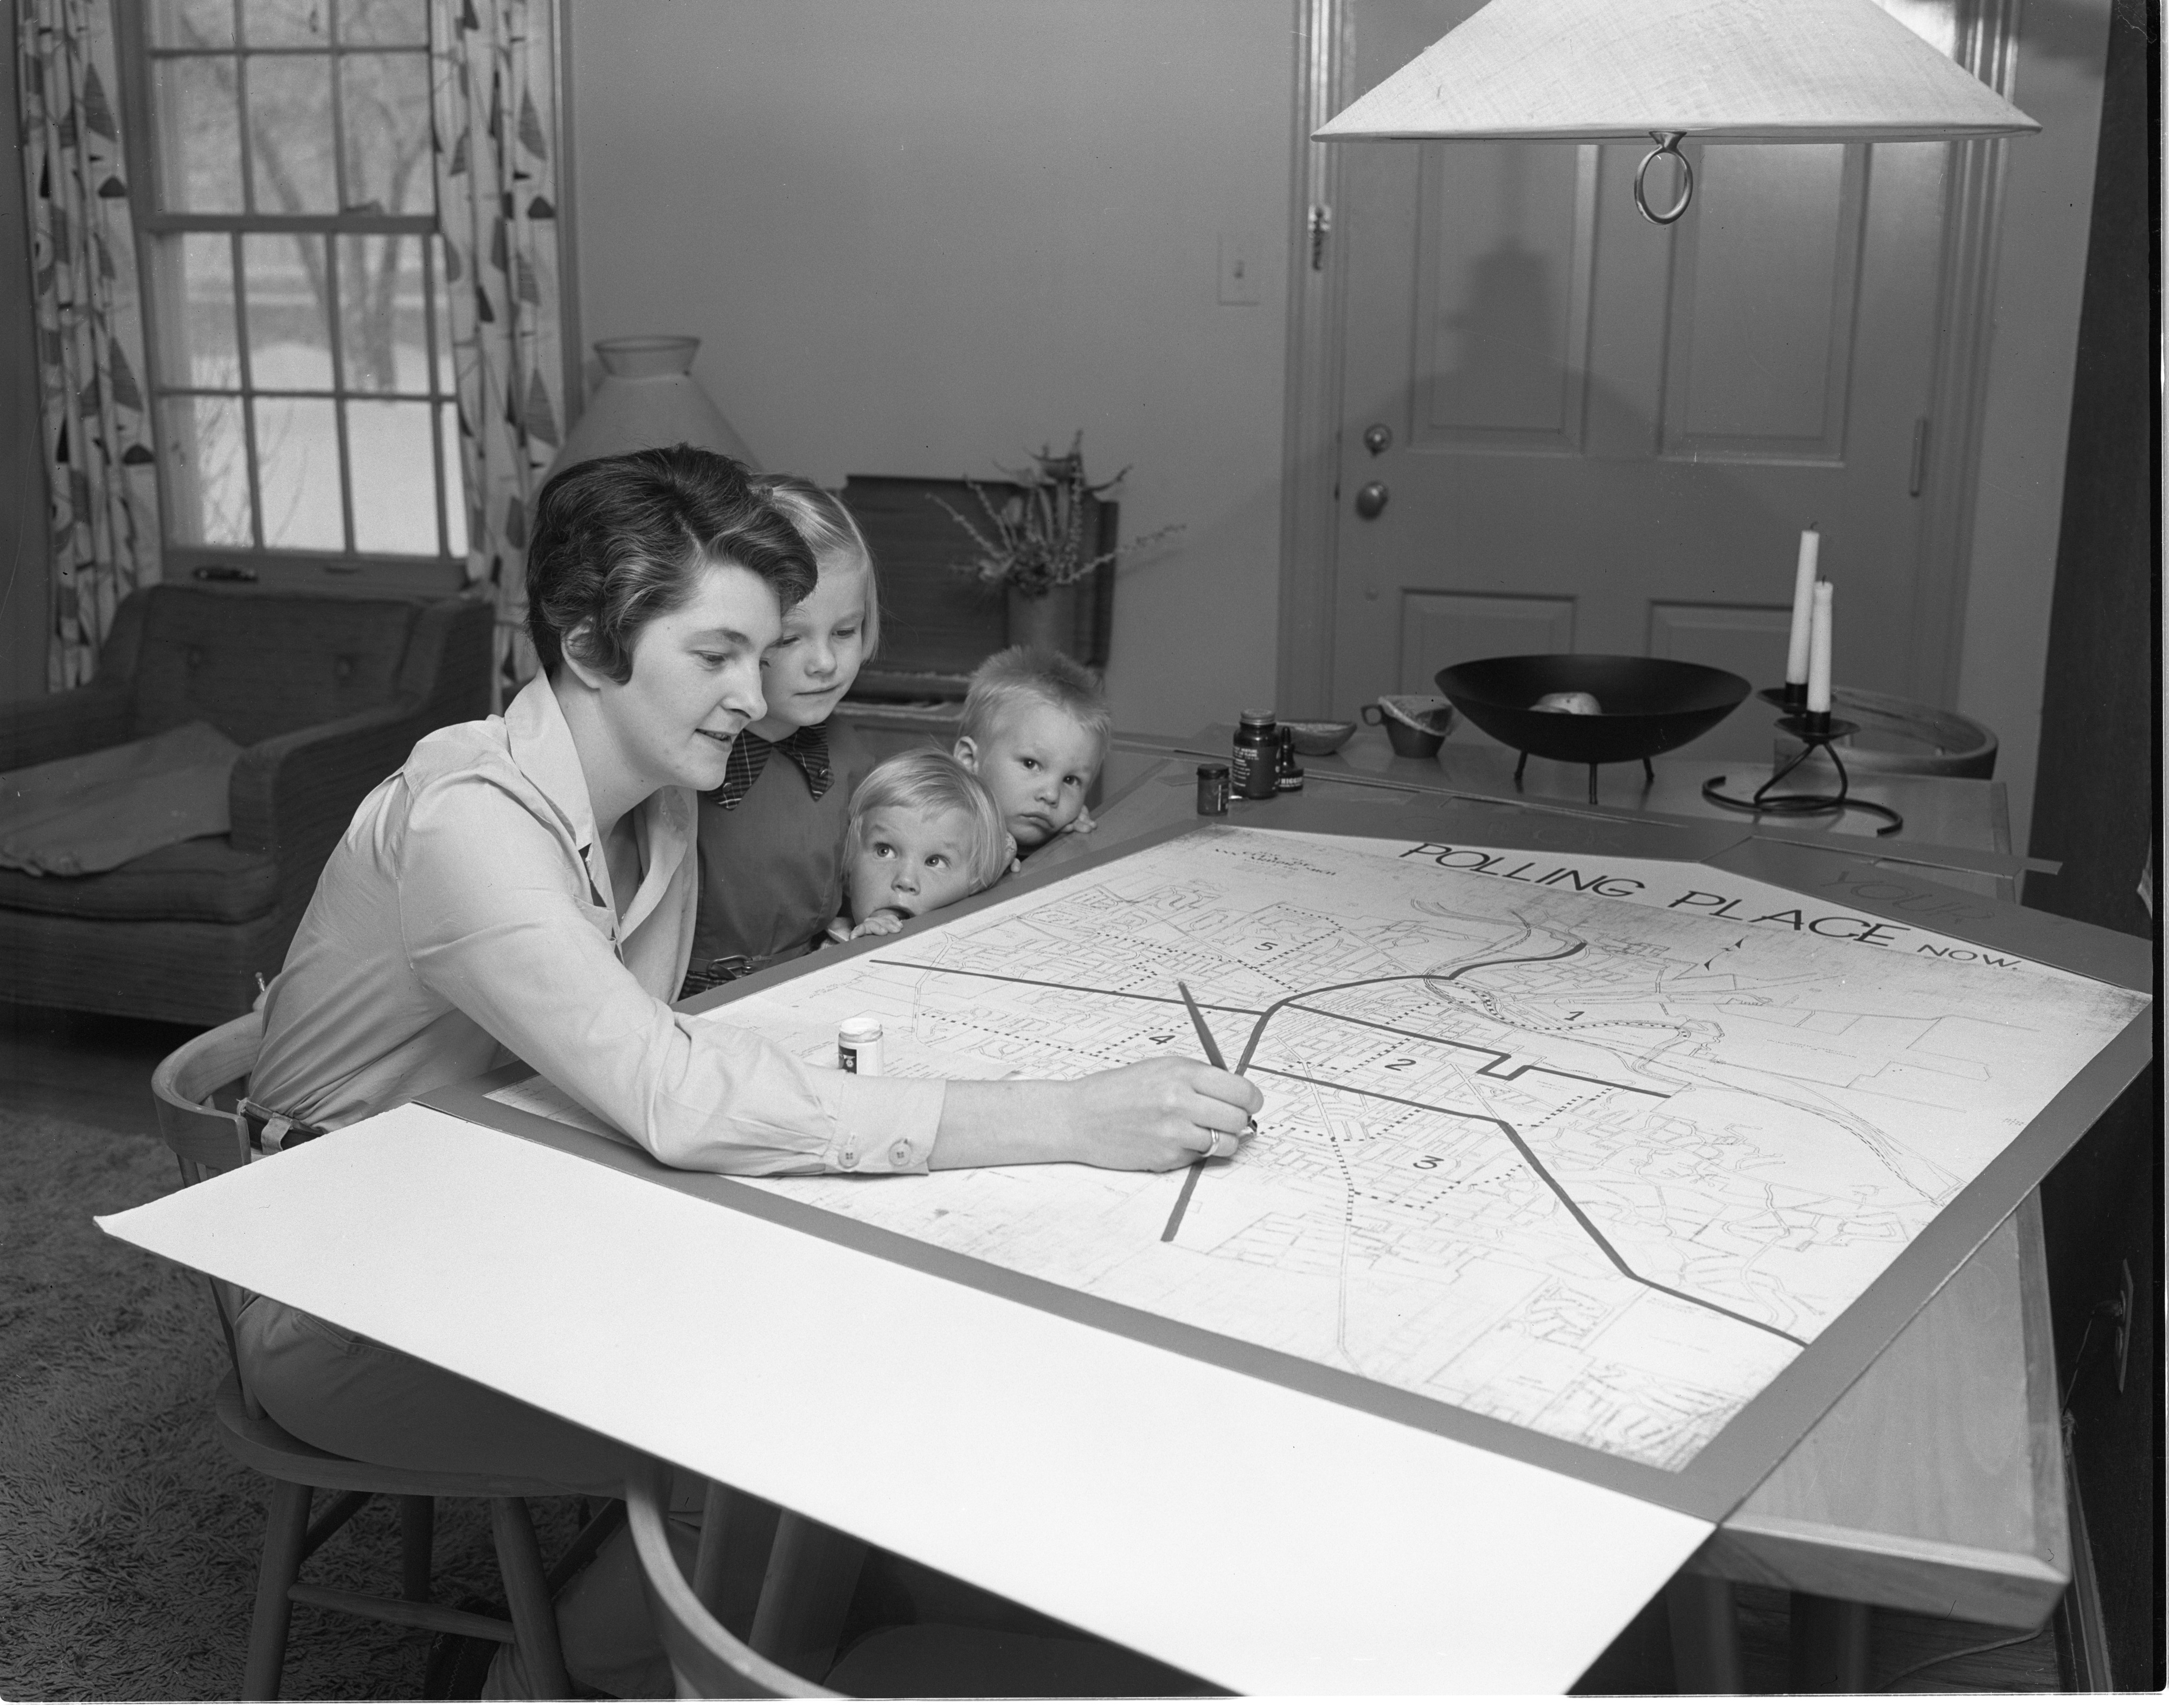 Olga Michelsen Makes A Map For The League Of Women Voters, March 1956 image